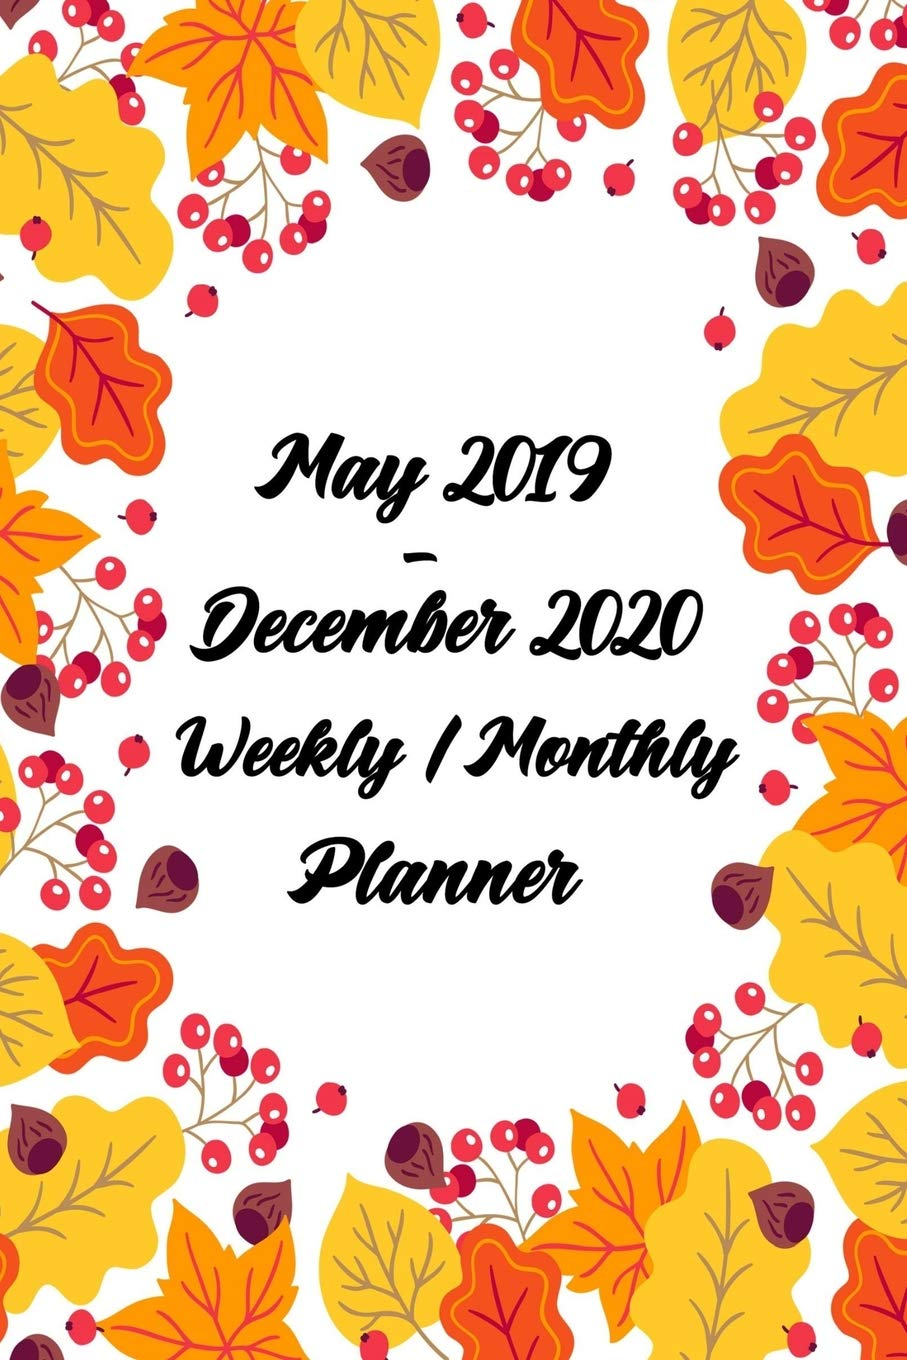 Pretty Calendars For February-May 2020 Amazon.com: May 2019   December 2020 Weekly / Monthly Planner